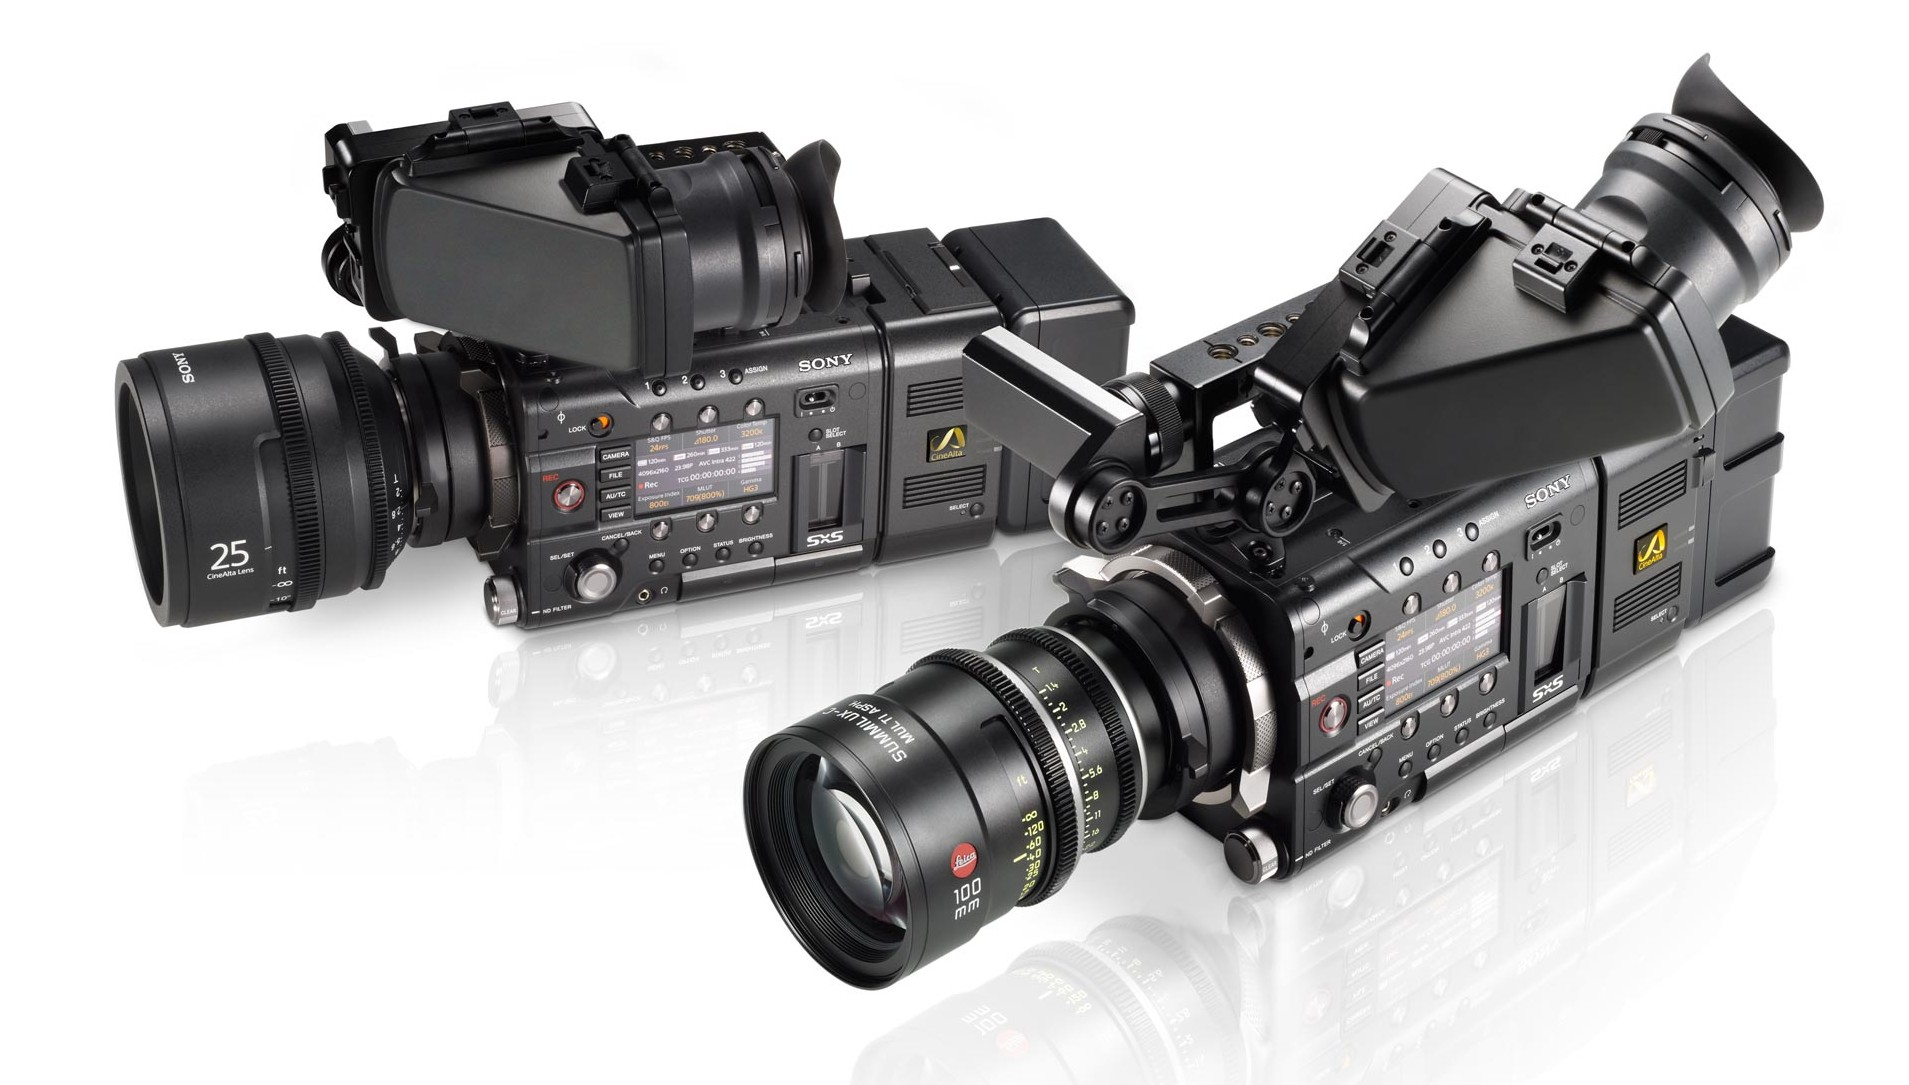 sony F55 and F5